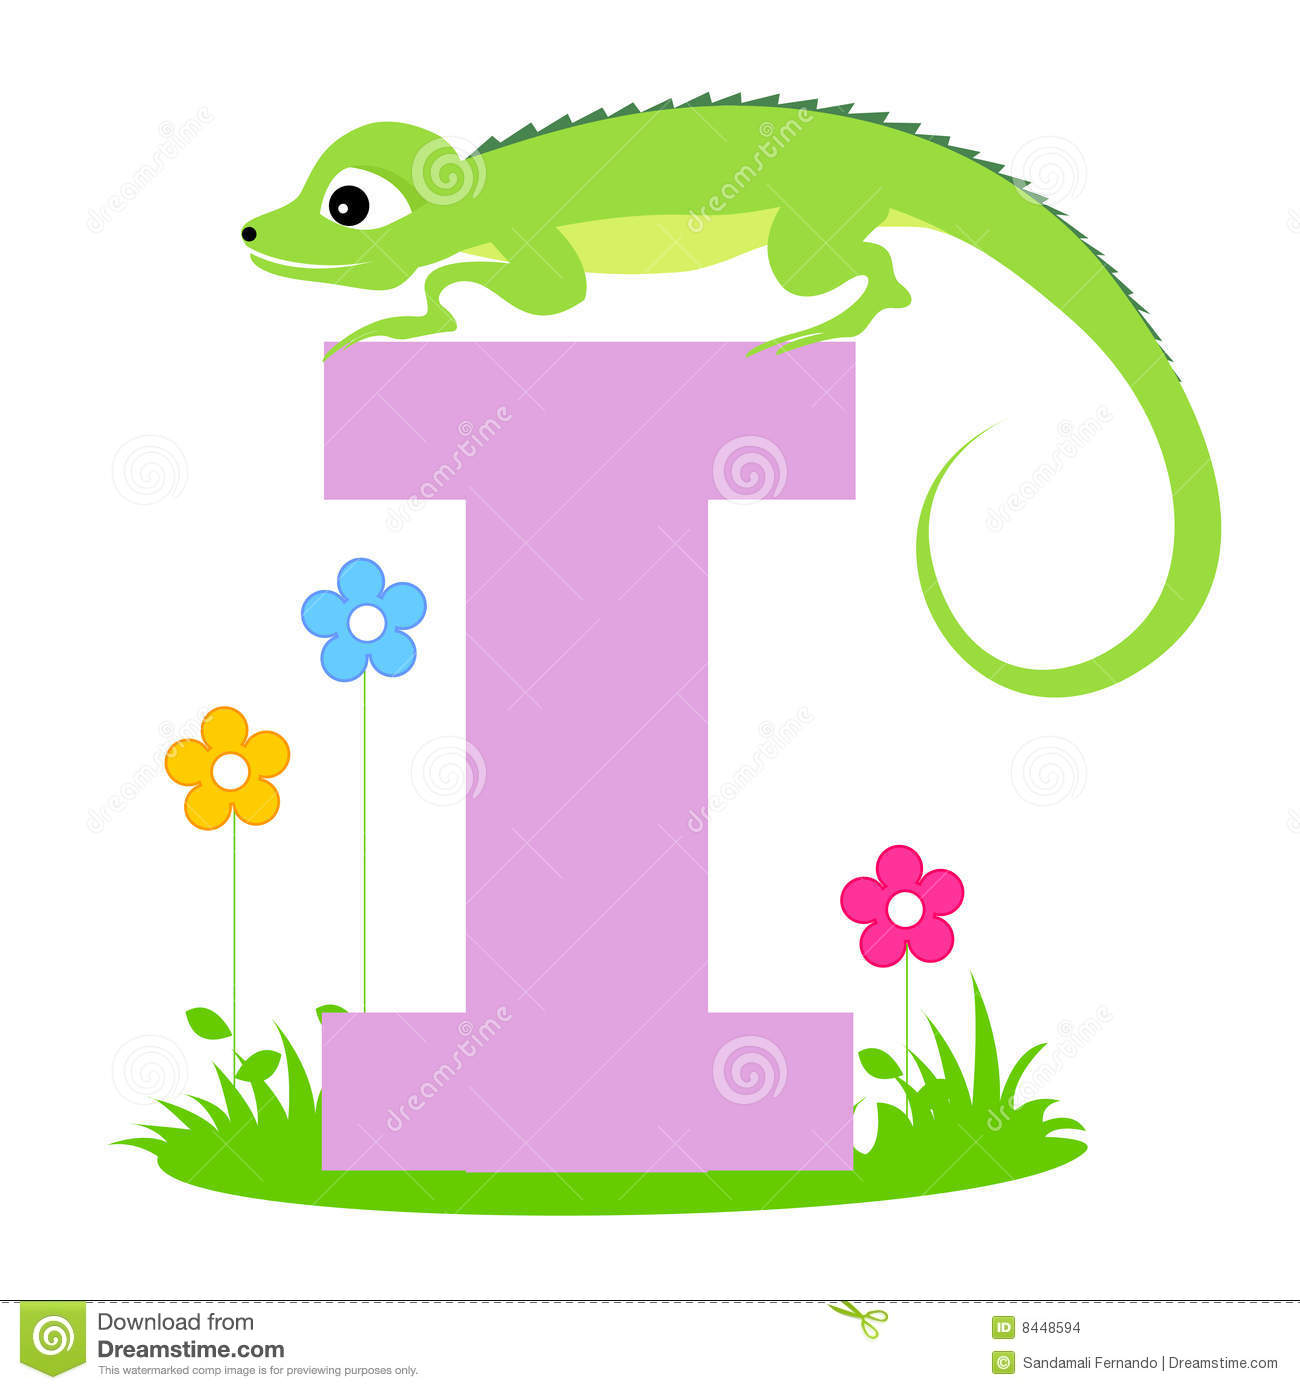 http://thumbs.dreamstime.com/z/lettre-de-l-animal-i-d-alphabet-8448594.jpg